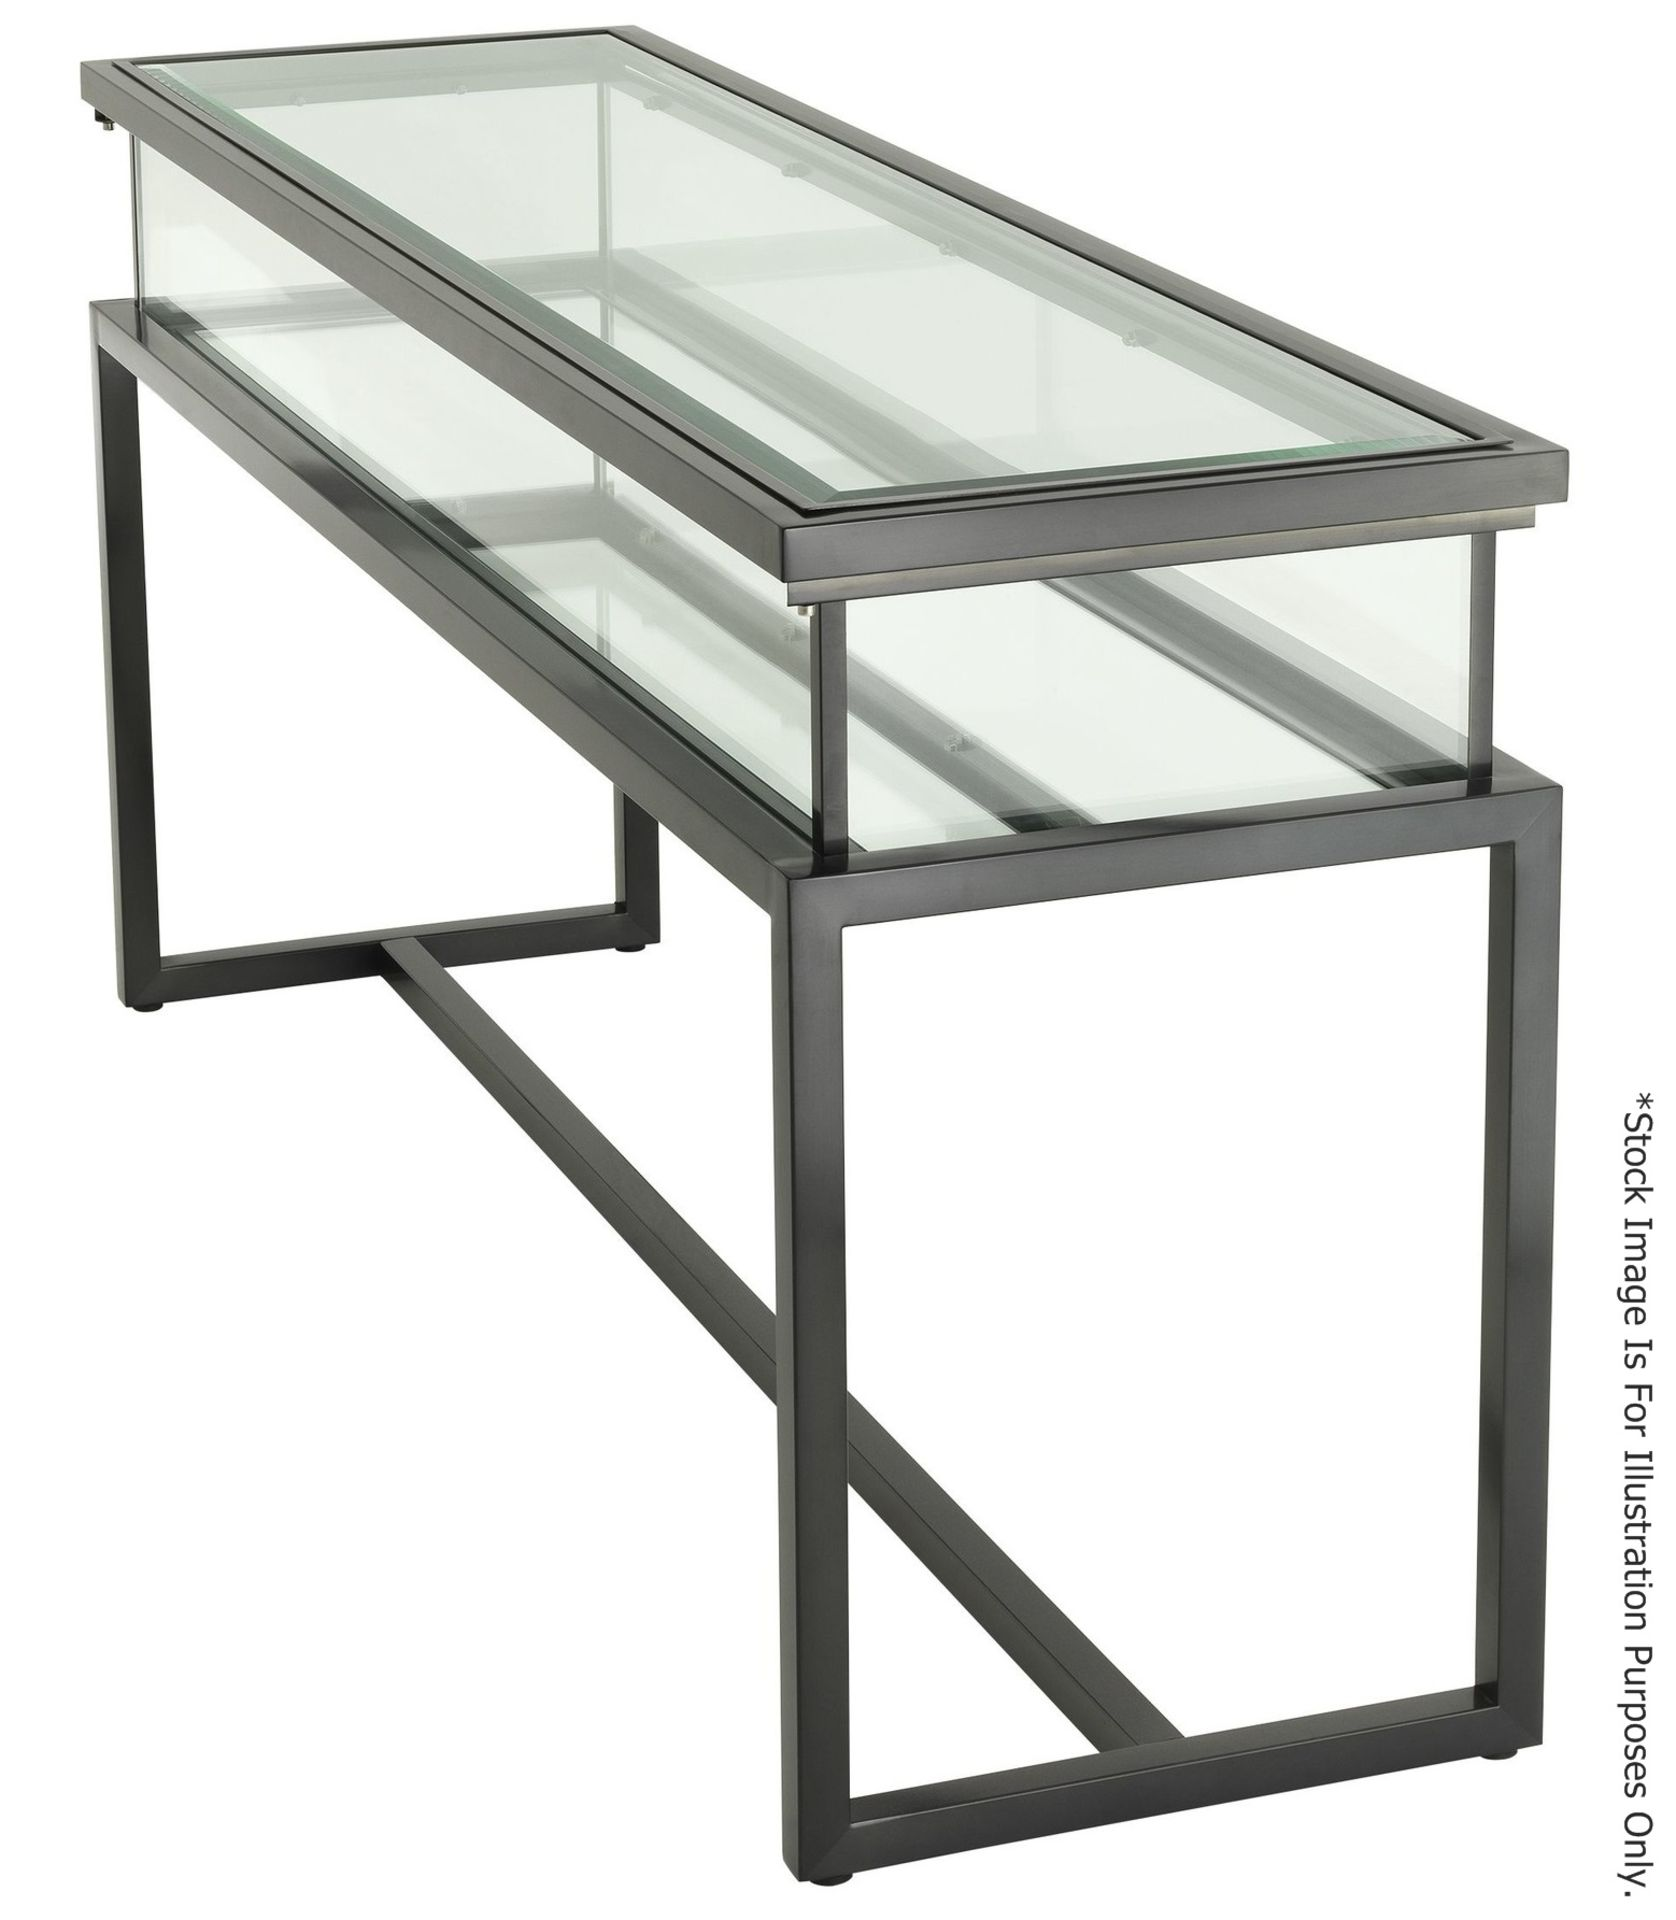 1 x EICHHOLTZ Luxury Console Table Harvey With A Sliding Glass Top And Steel Frame - RRP £3,839 - Image 2 of 16